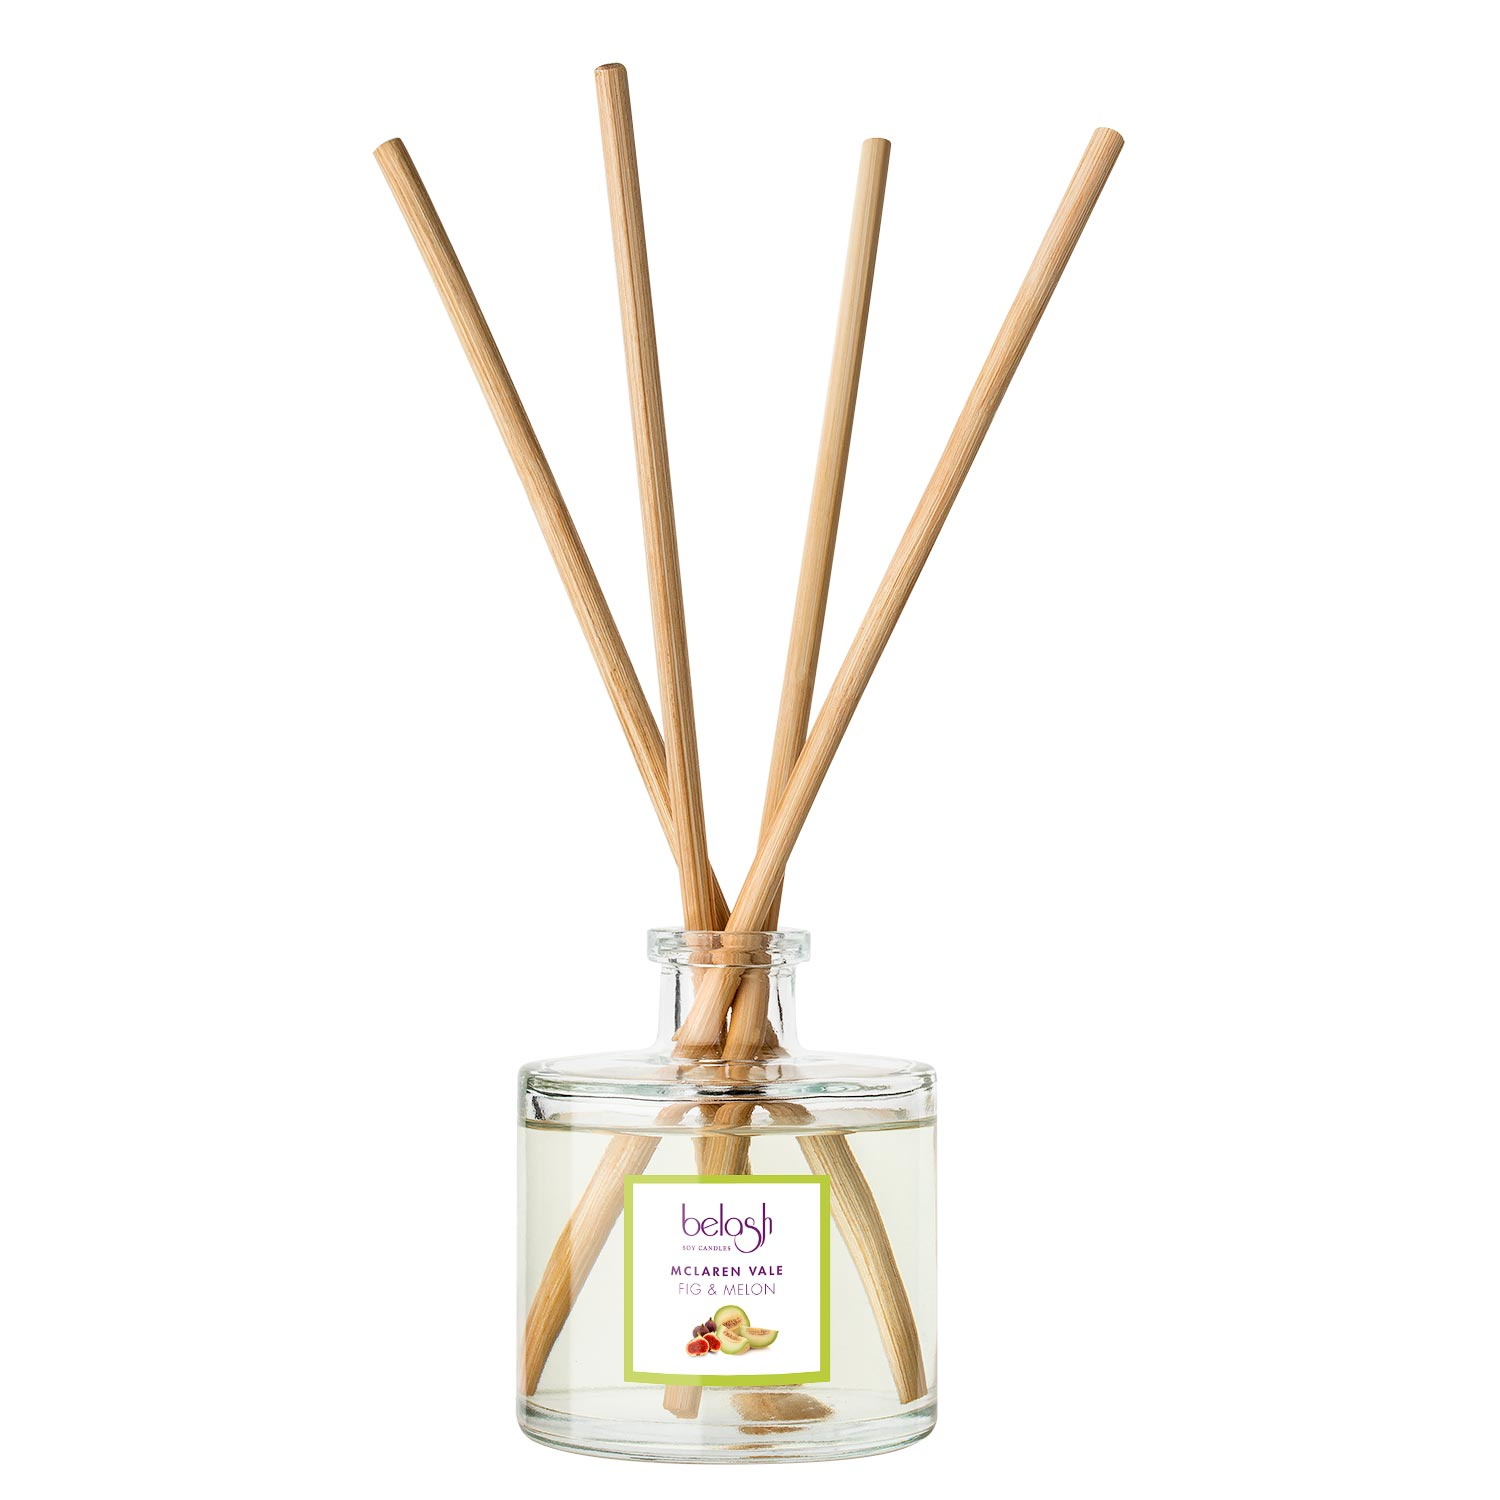 Belash Diffusers   Our beautiful range of Diffusers that last for up to 6+ months and have a continuous fragrance...